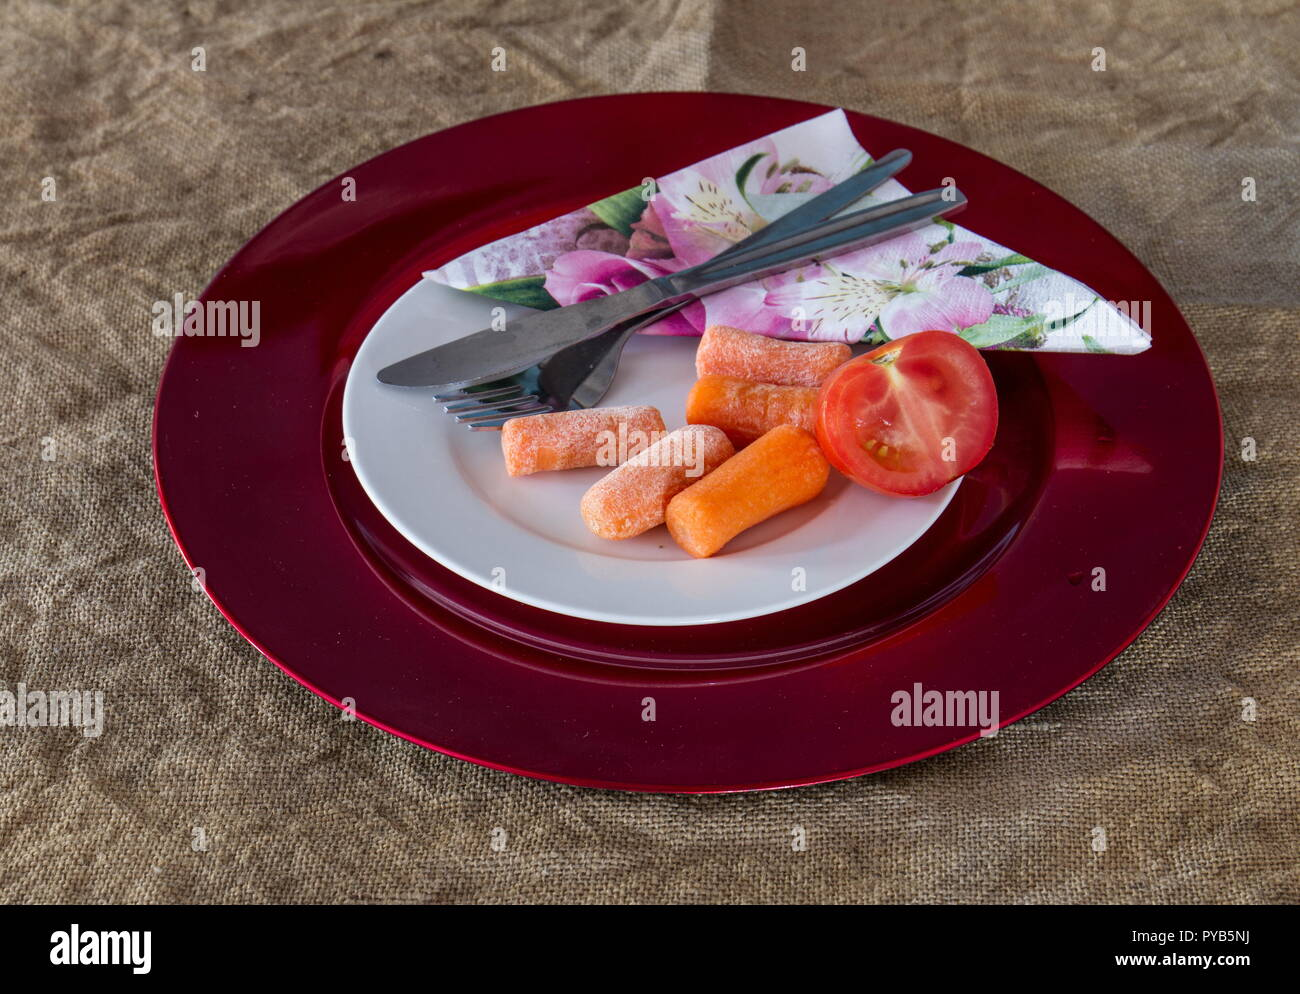 Leftovers on a plate with eating utensils image with copy space in landscape format - Stock Image